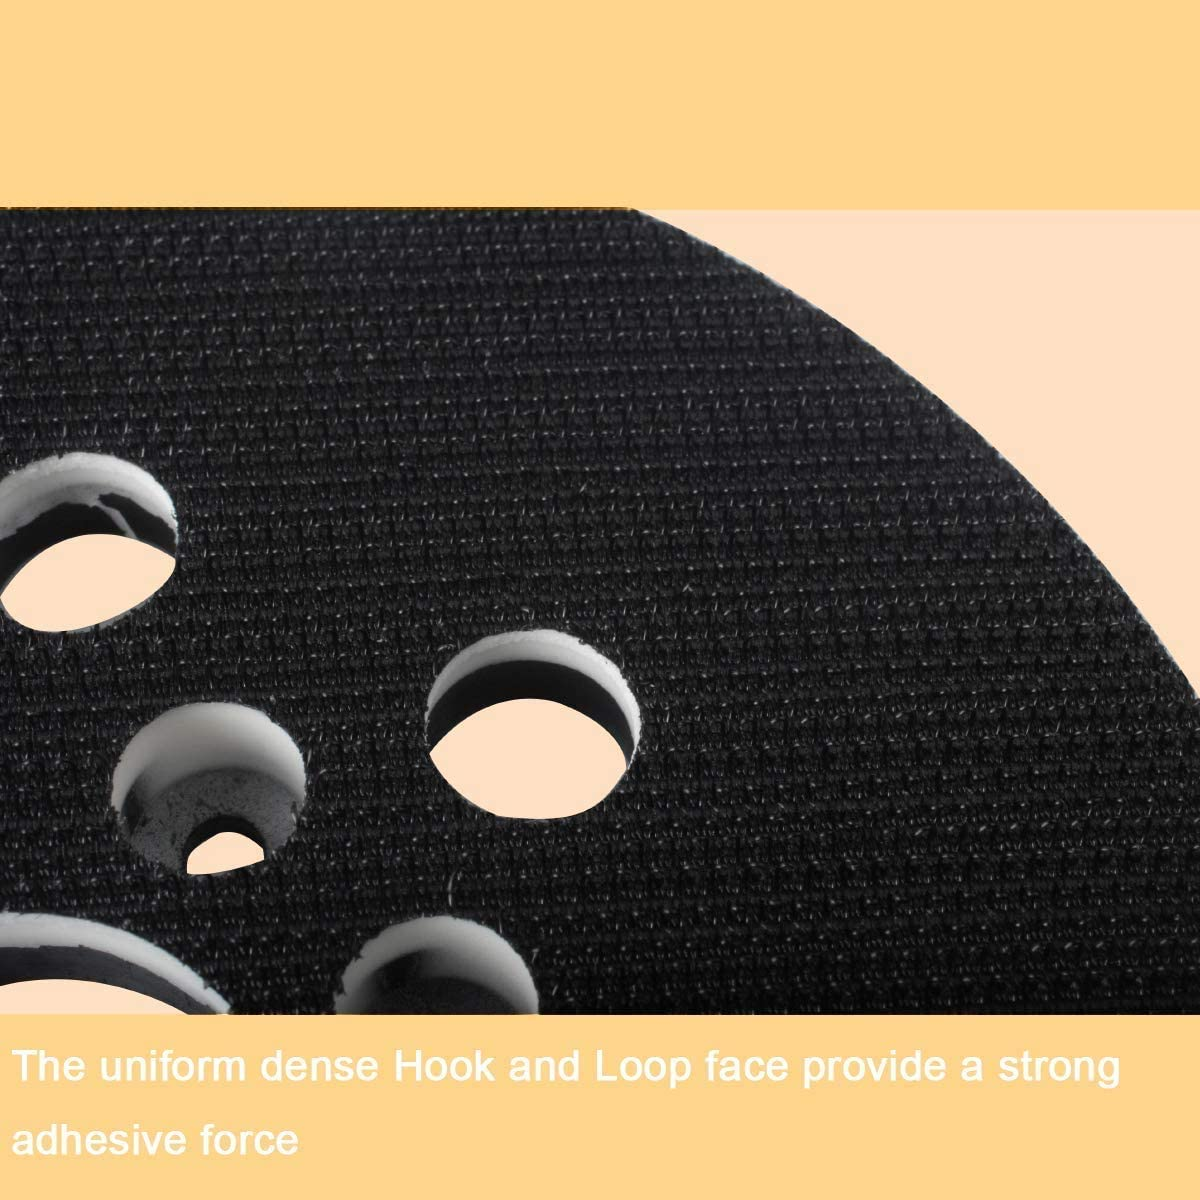 PEX 220 A 125 mm Velcro Sanding Plate Replacement Poweka Pad for Bosch RS035 GEX 125-1 AE Skil 7402//7490 PEX 220 AE